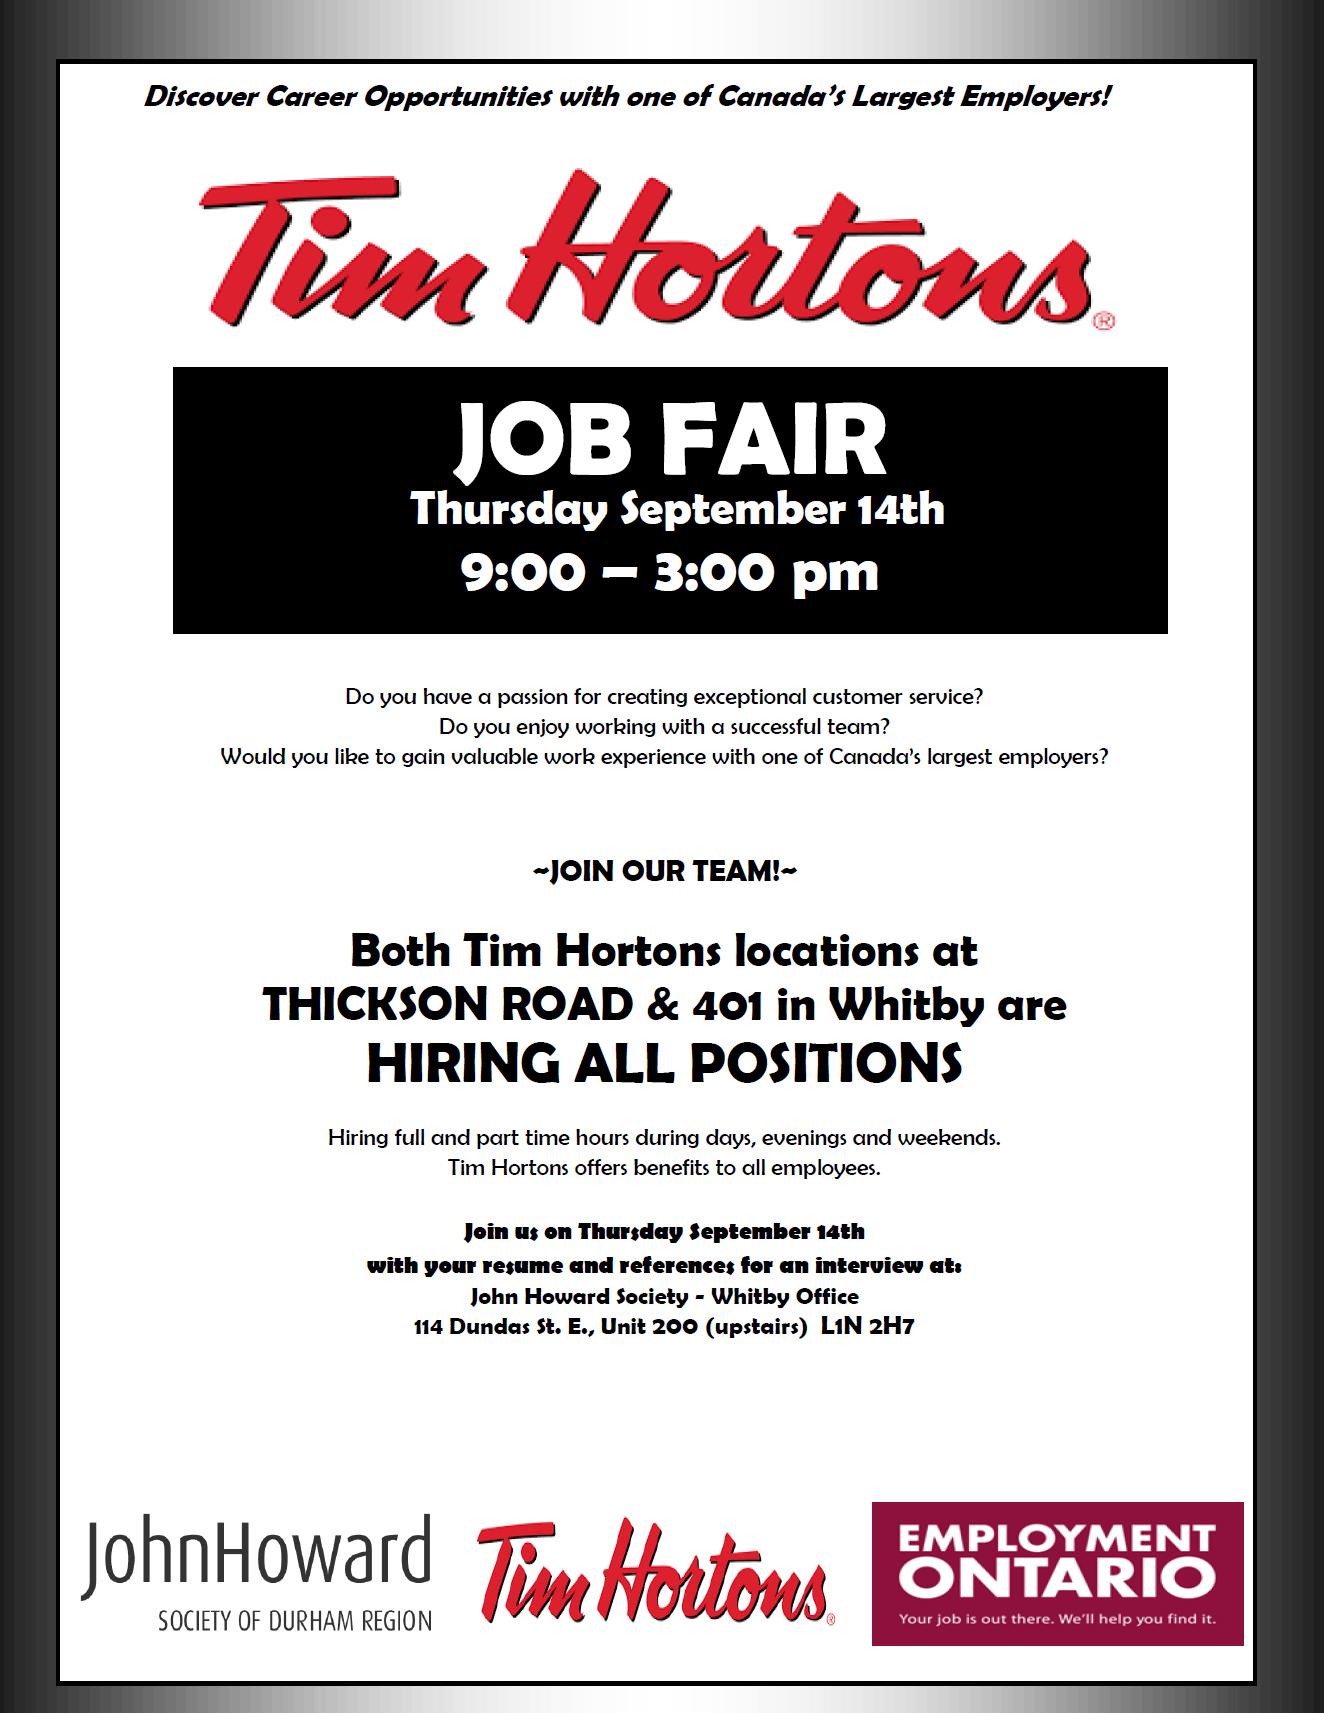 News jhs employment services page 2 tim hortons job fair two locations are hiring join us at john howard society of durham region whitby 114 dundas street east suite 200 from 9am till 3pm falaconquin